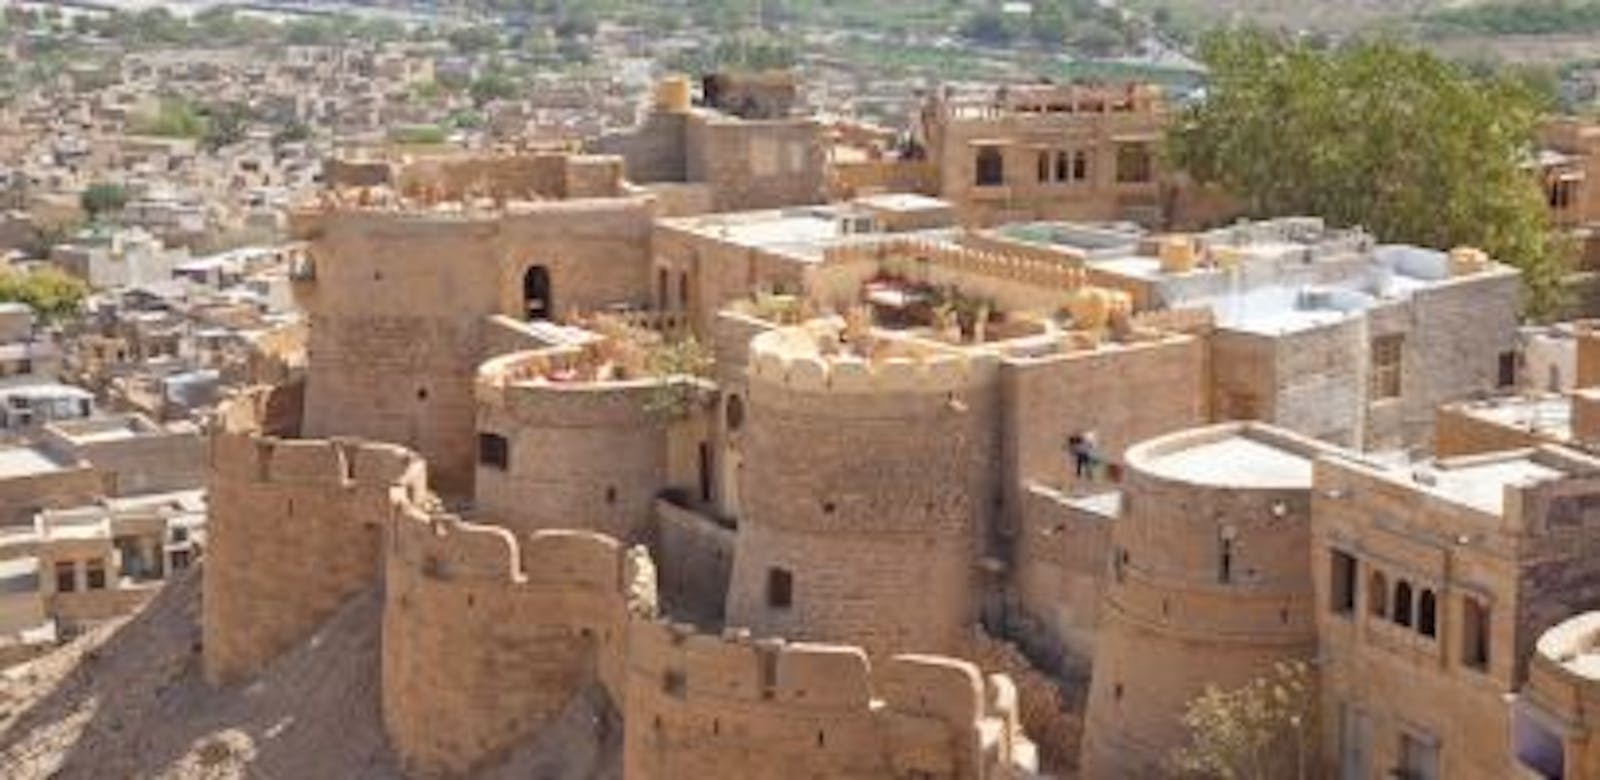 Luxury holidays to Jaisalmer